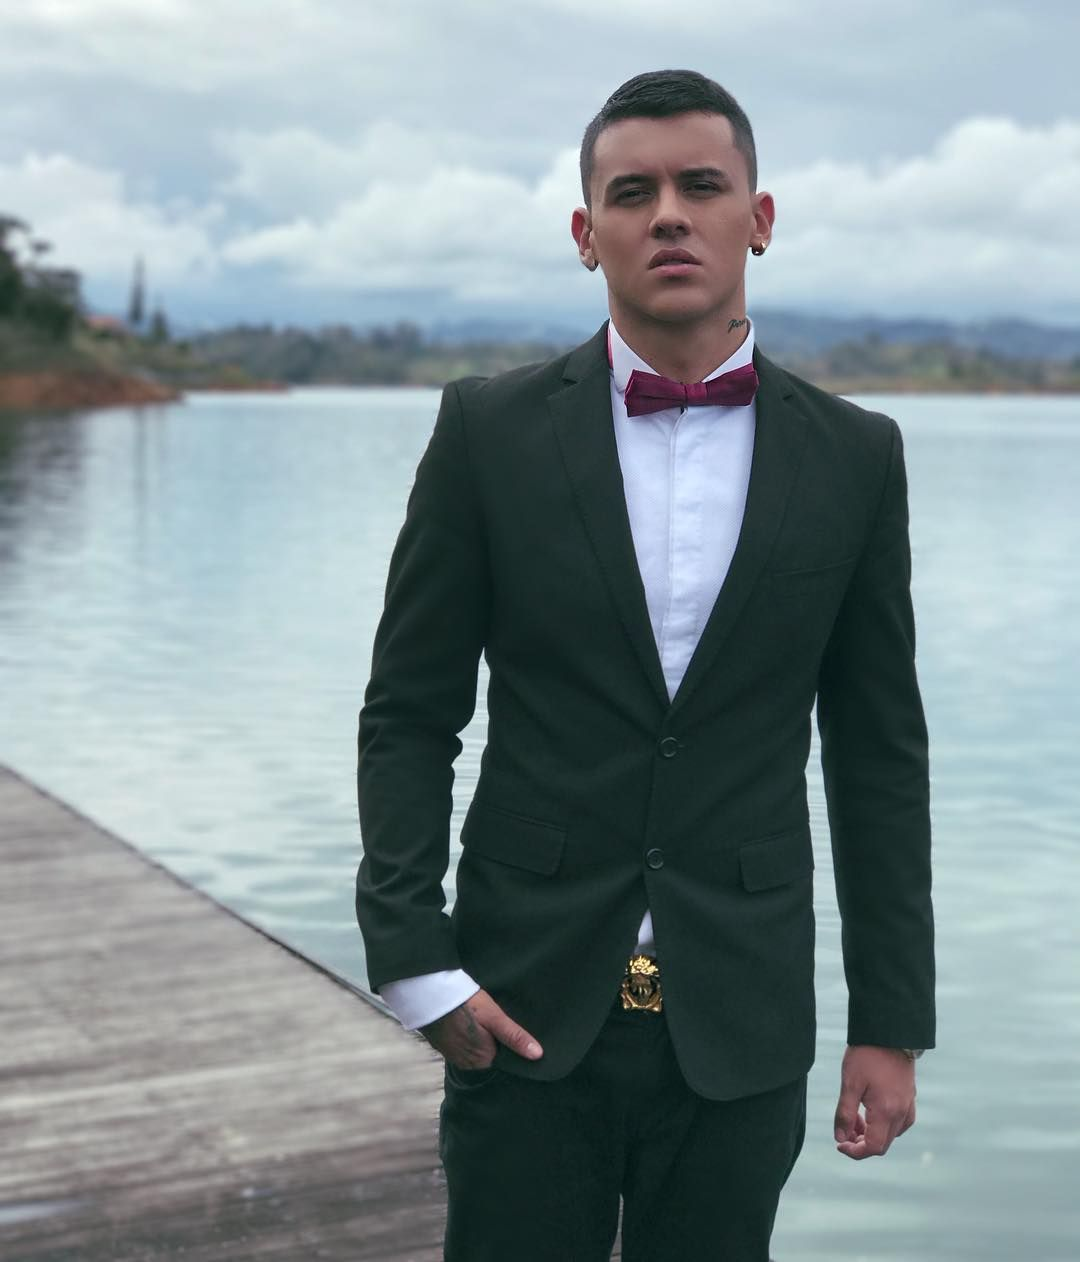 ¿Cuánto mide Kevin Roldán? - Altura - Real height Dfde121263647c8980ee92b3e9413bfd